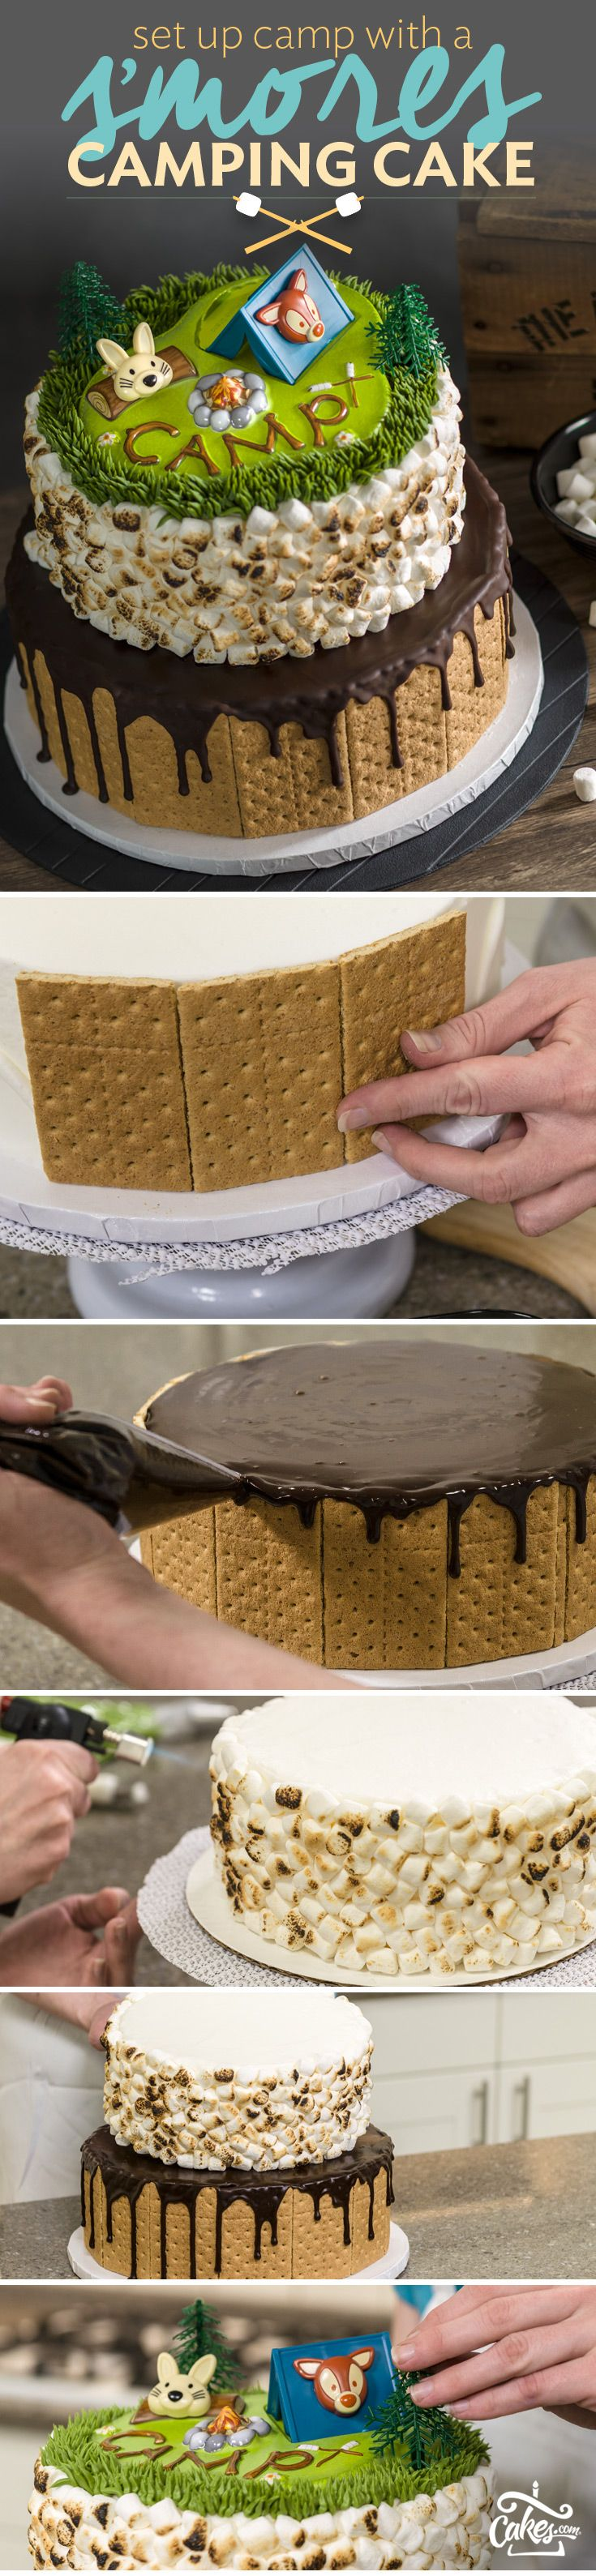 How To Make A 2 Tier Smores Camping Cake Fun In The Summer